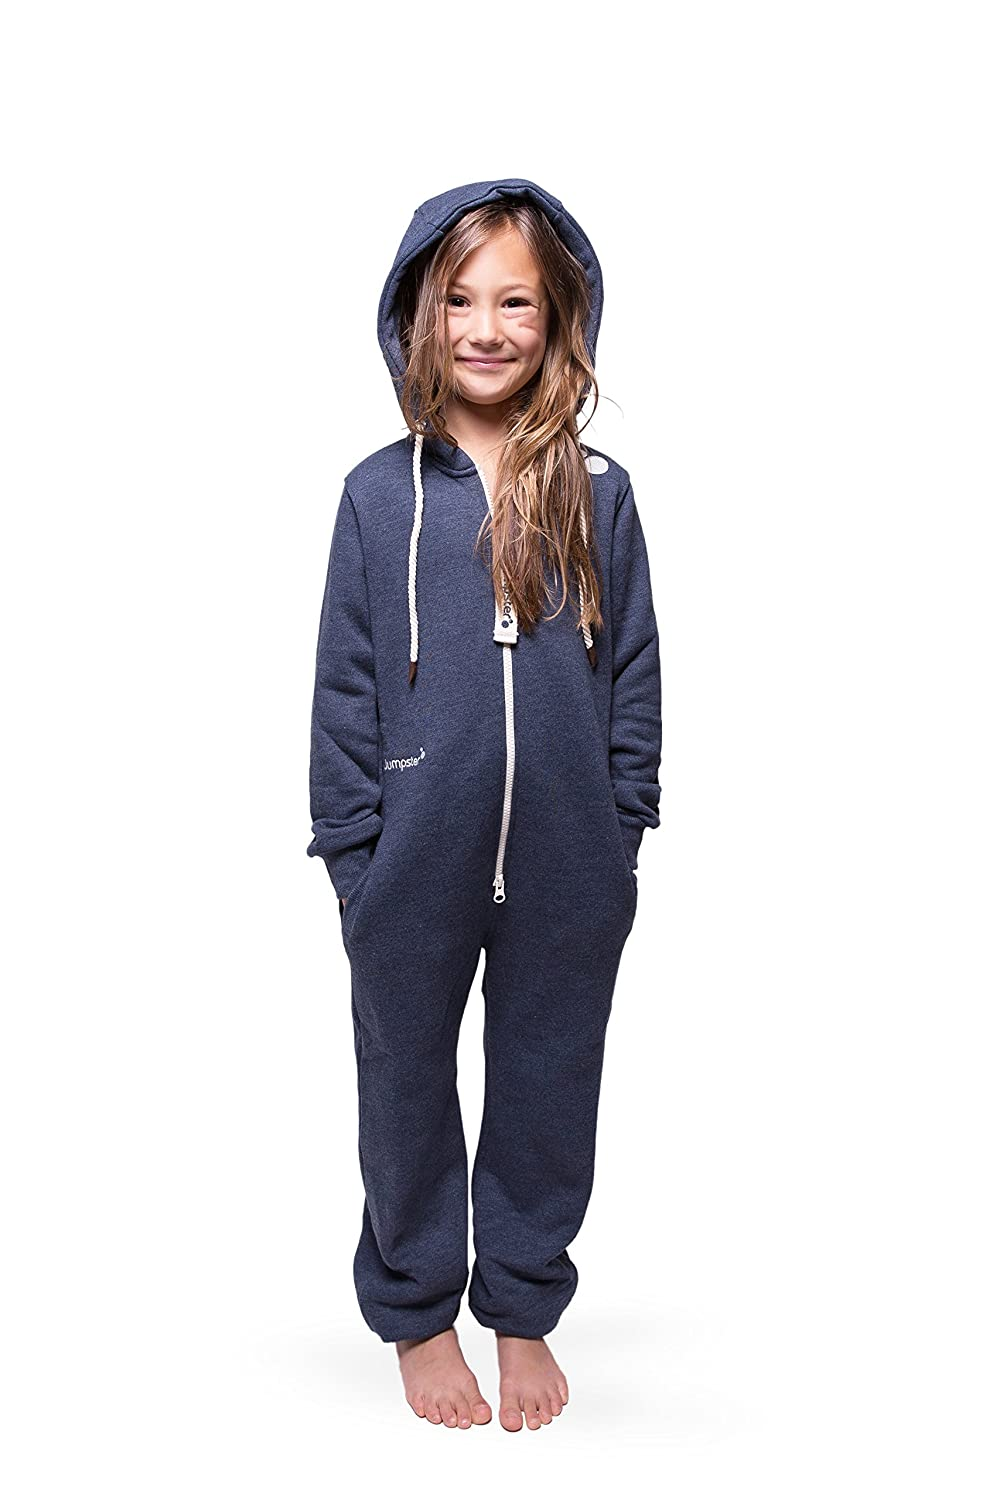 Jumpster Jumpsuit Kinder Overall EXQUISITE KIDS